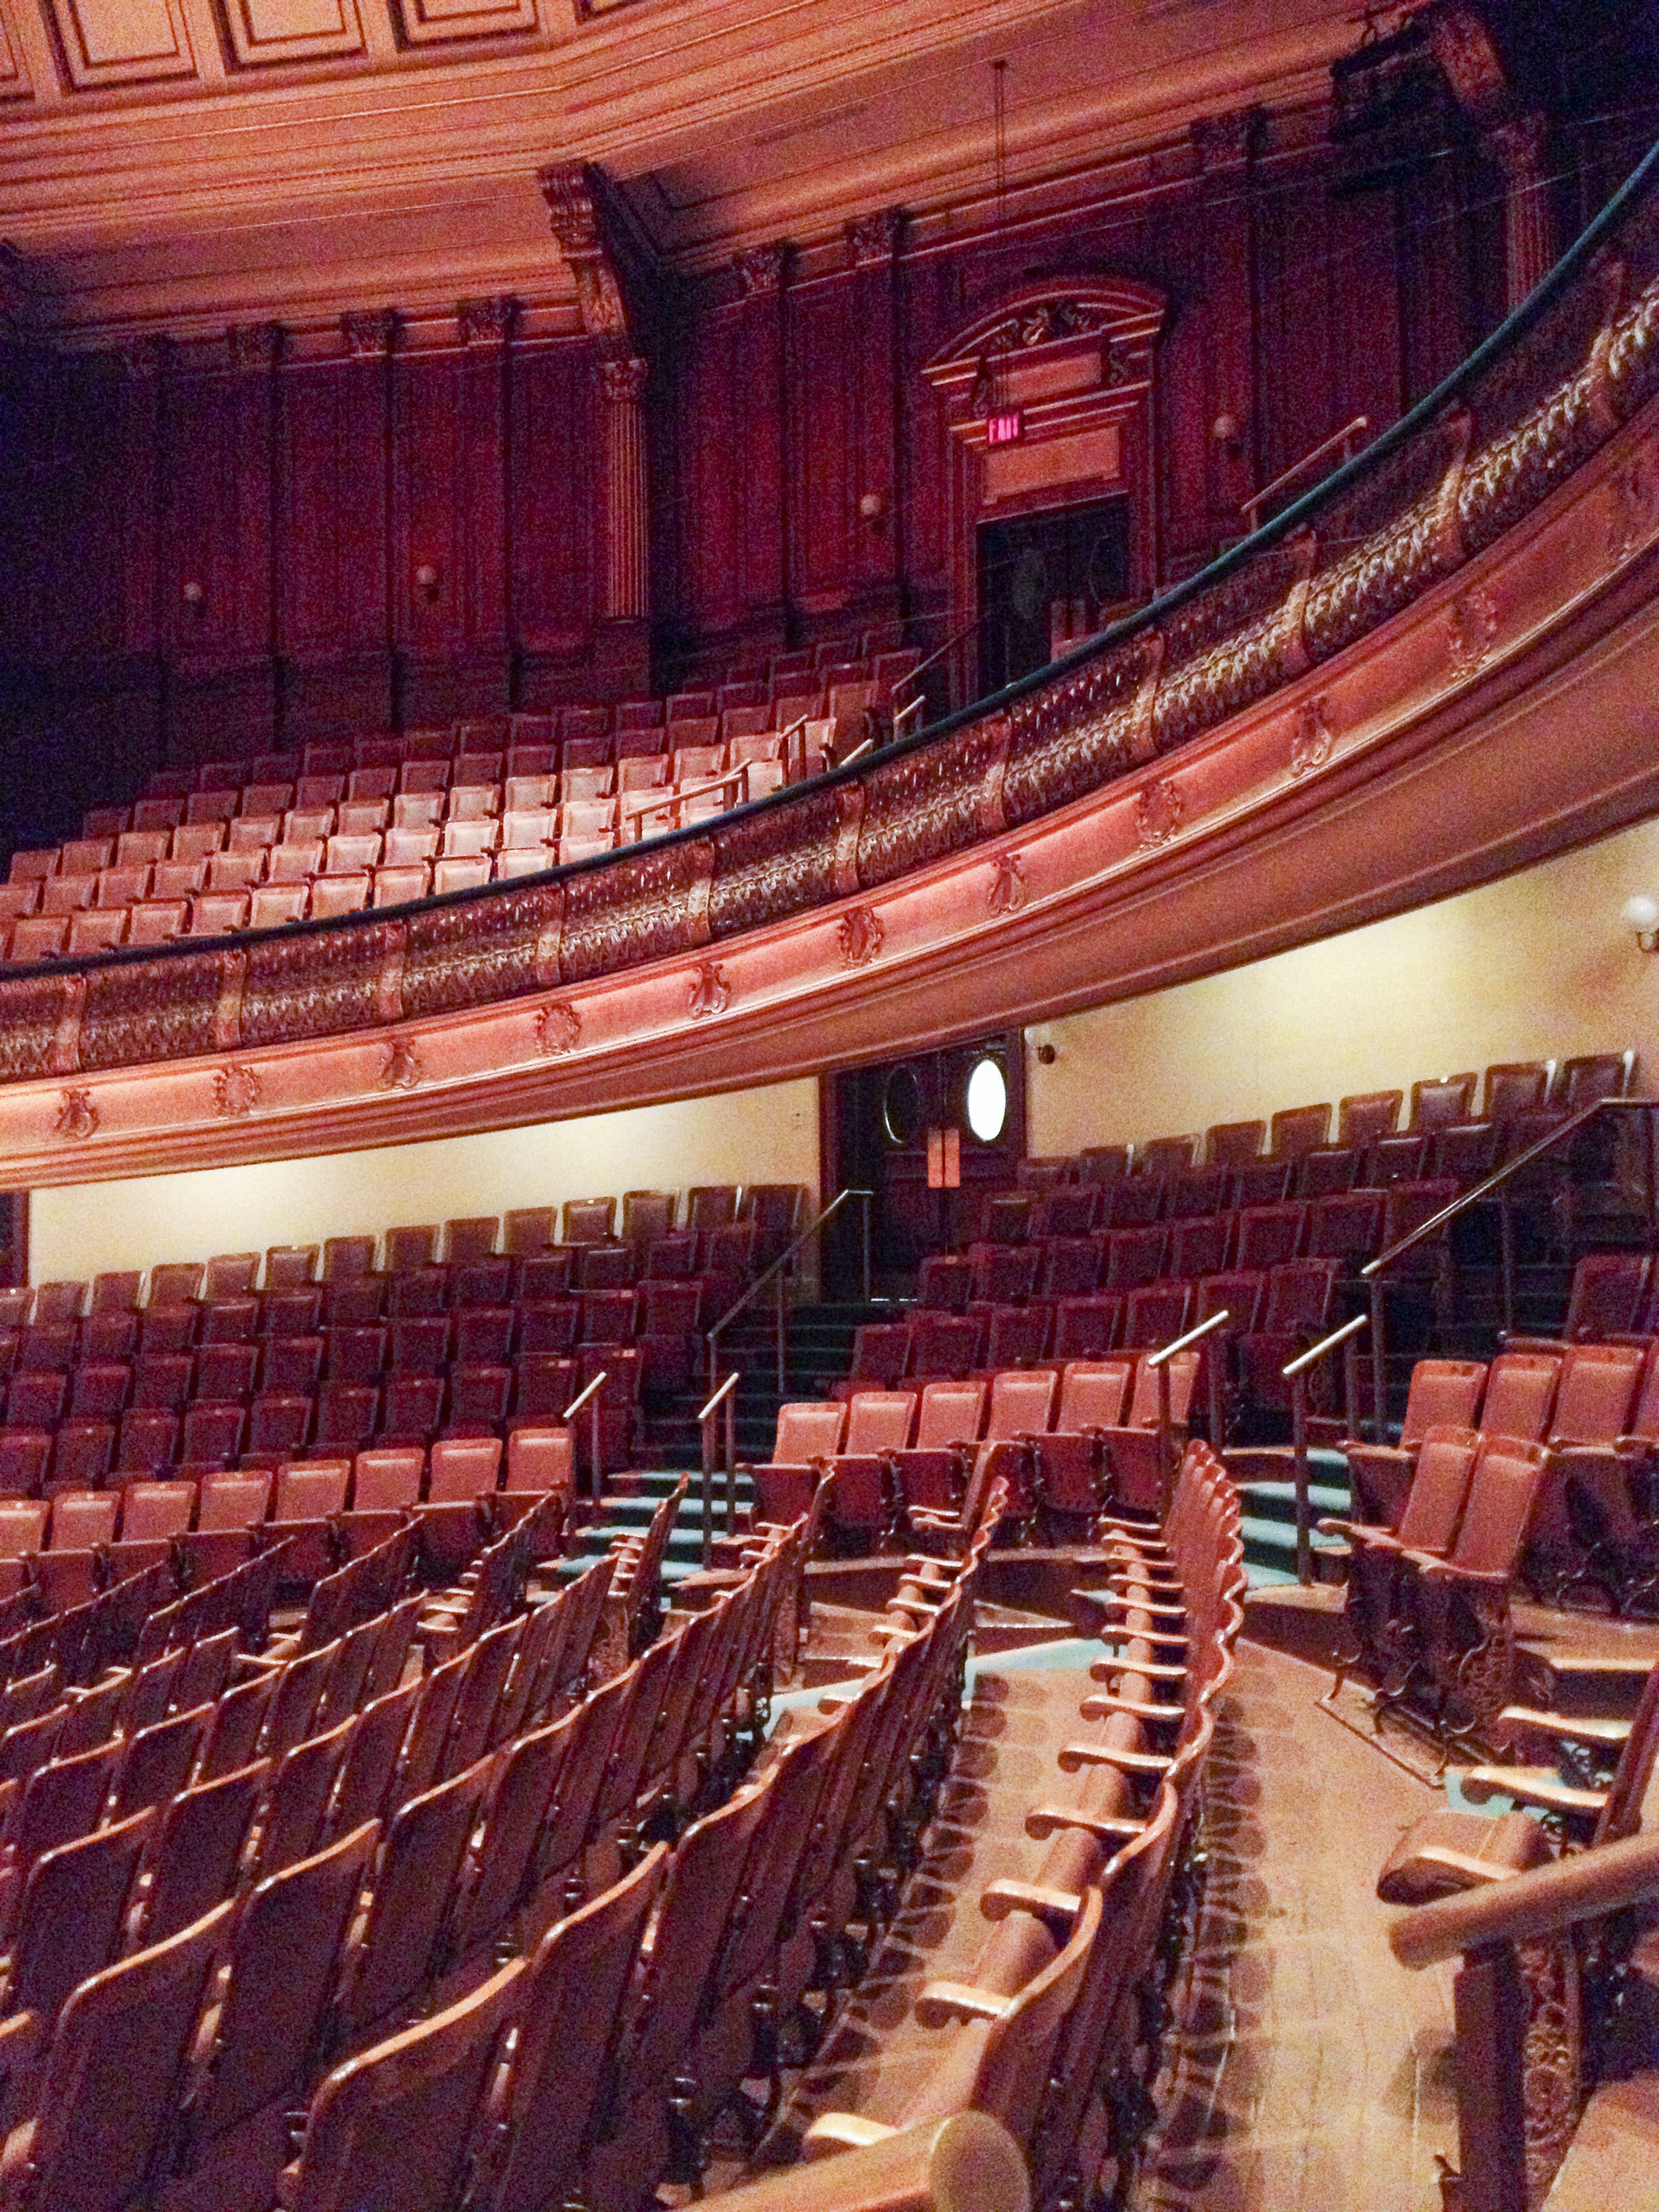 March 29, 2013 -- Seats curve around Jordan Hall, making the space feel small and intimate. Photo by Poncie Rutsch